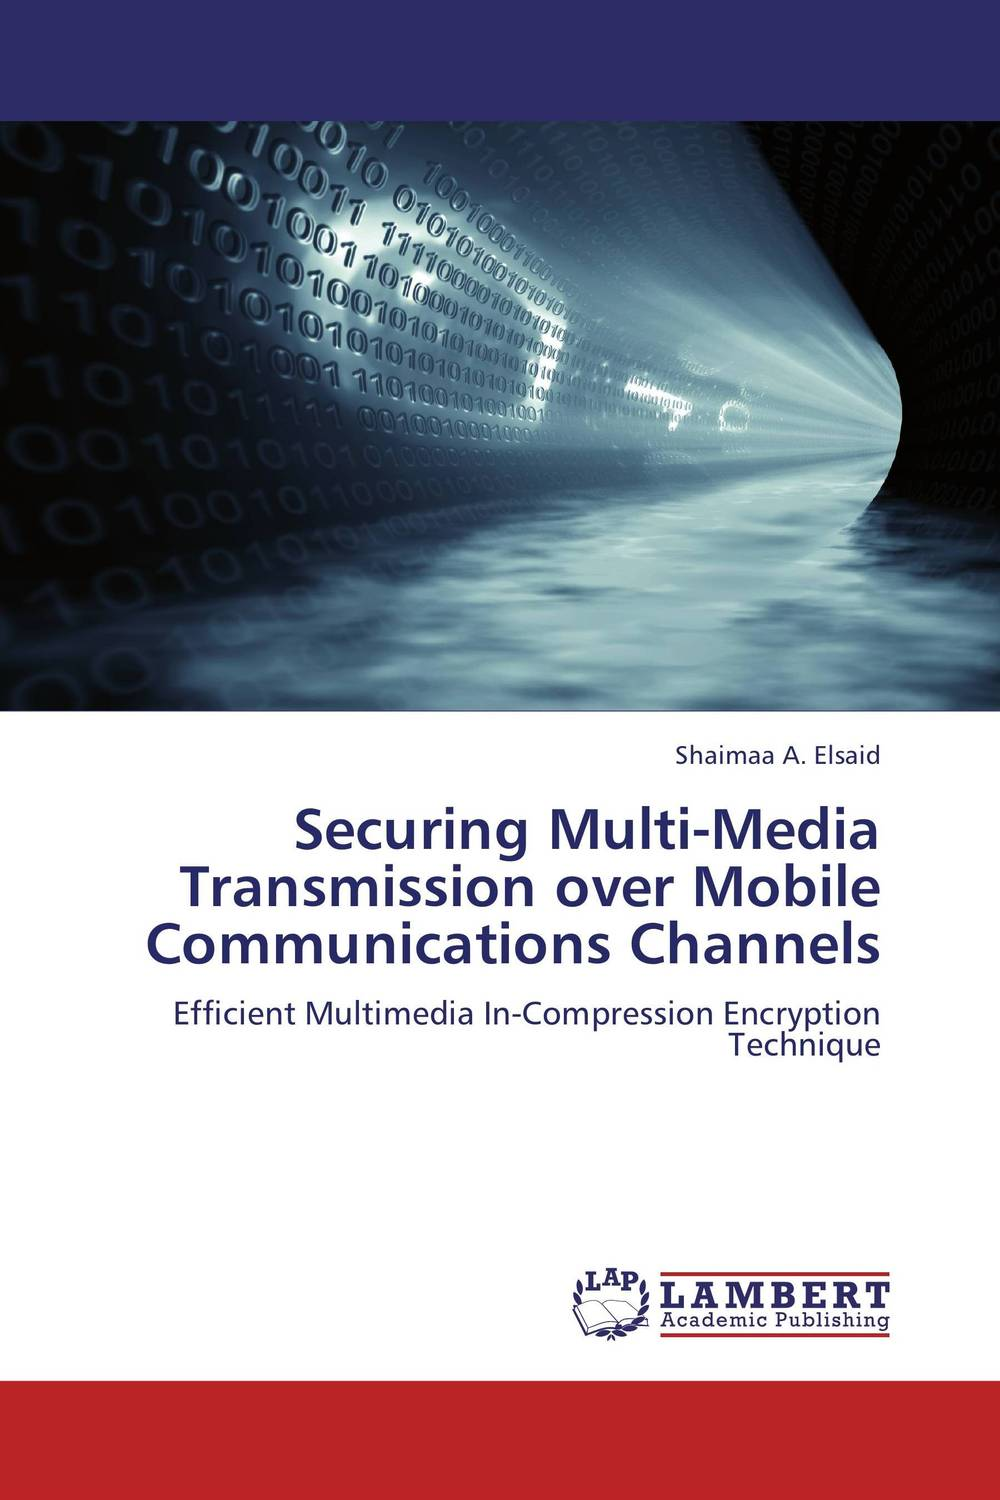 Securing Multi-Media Transmission over Mobile Communications Channels intelligent watermarking using loss less compression and rsa encryption